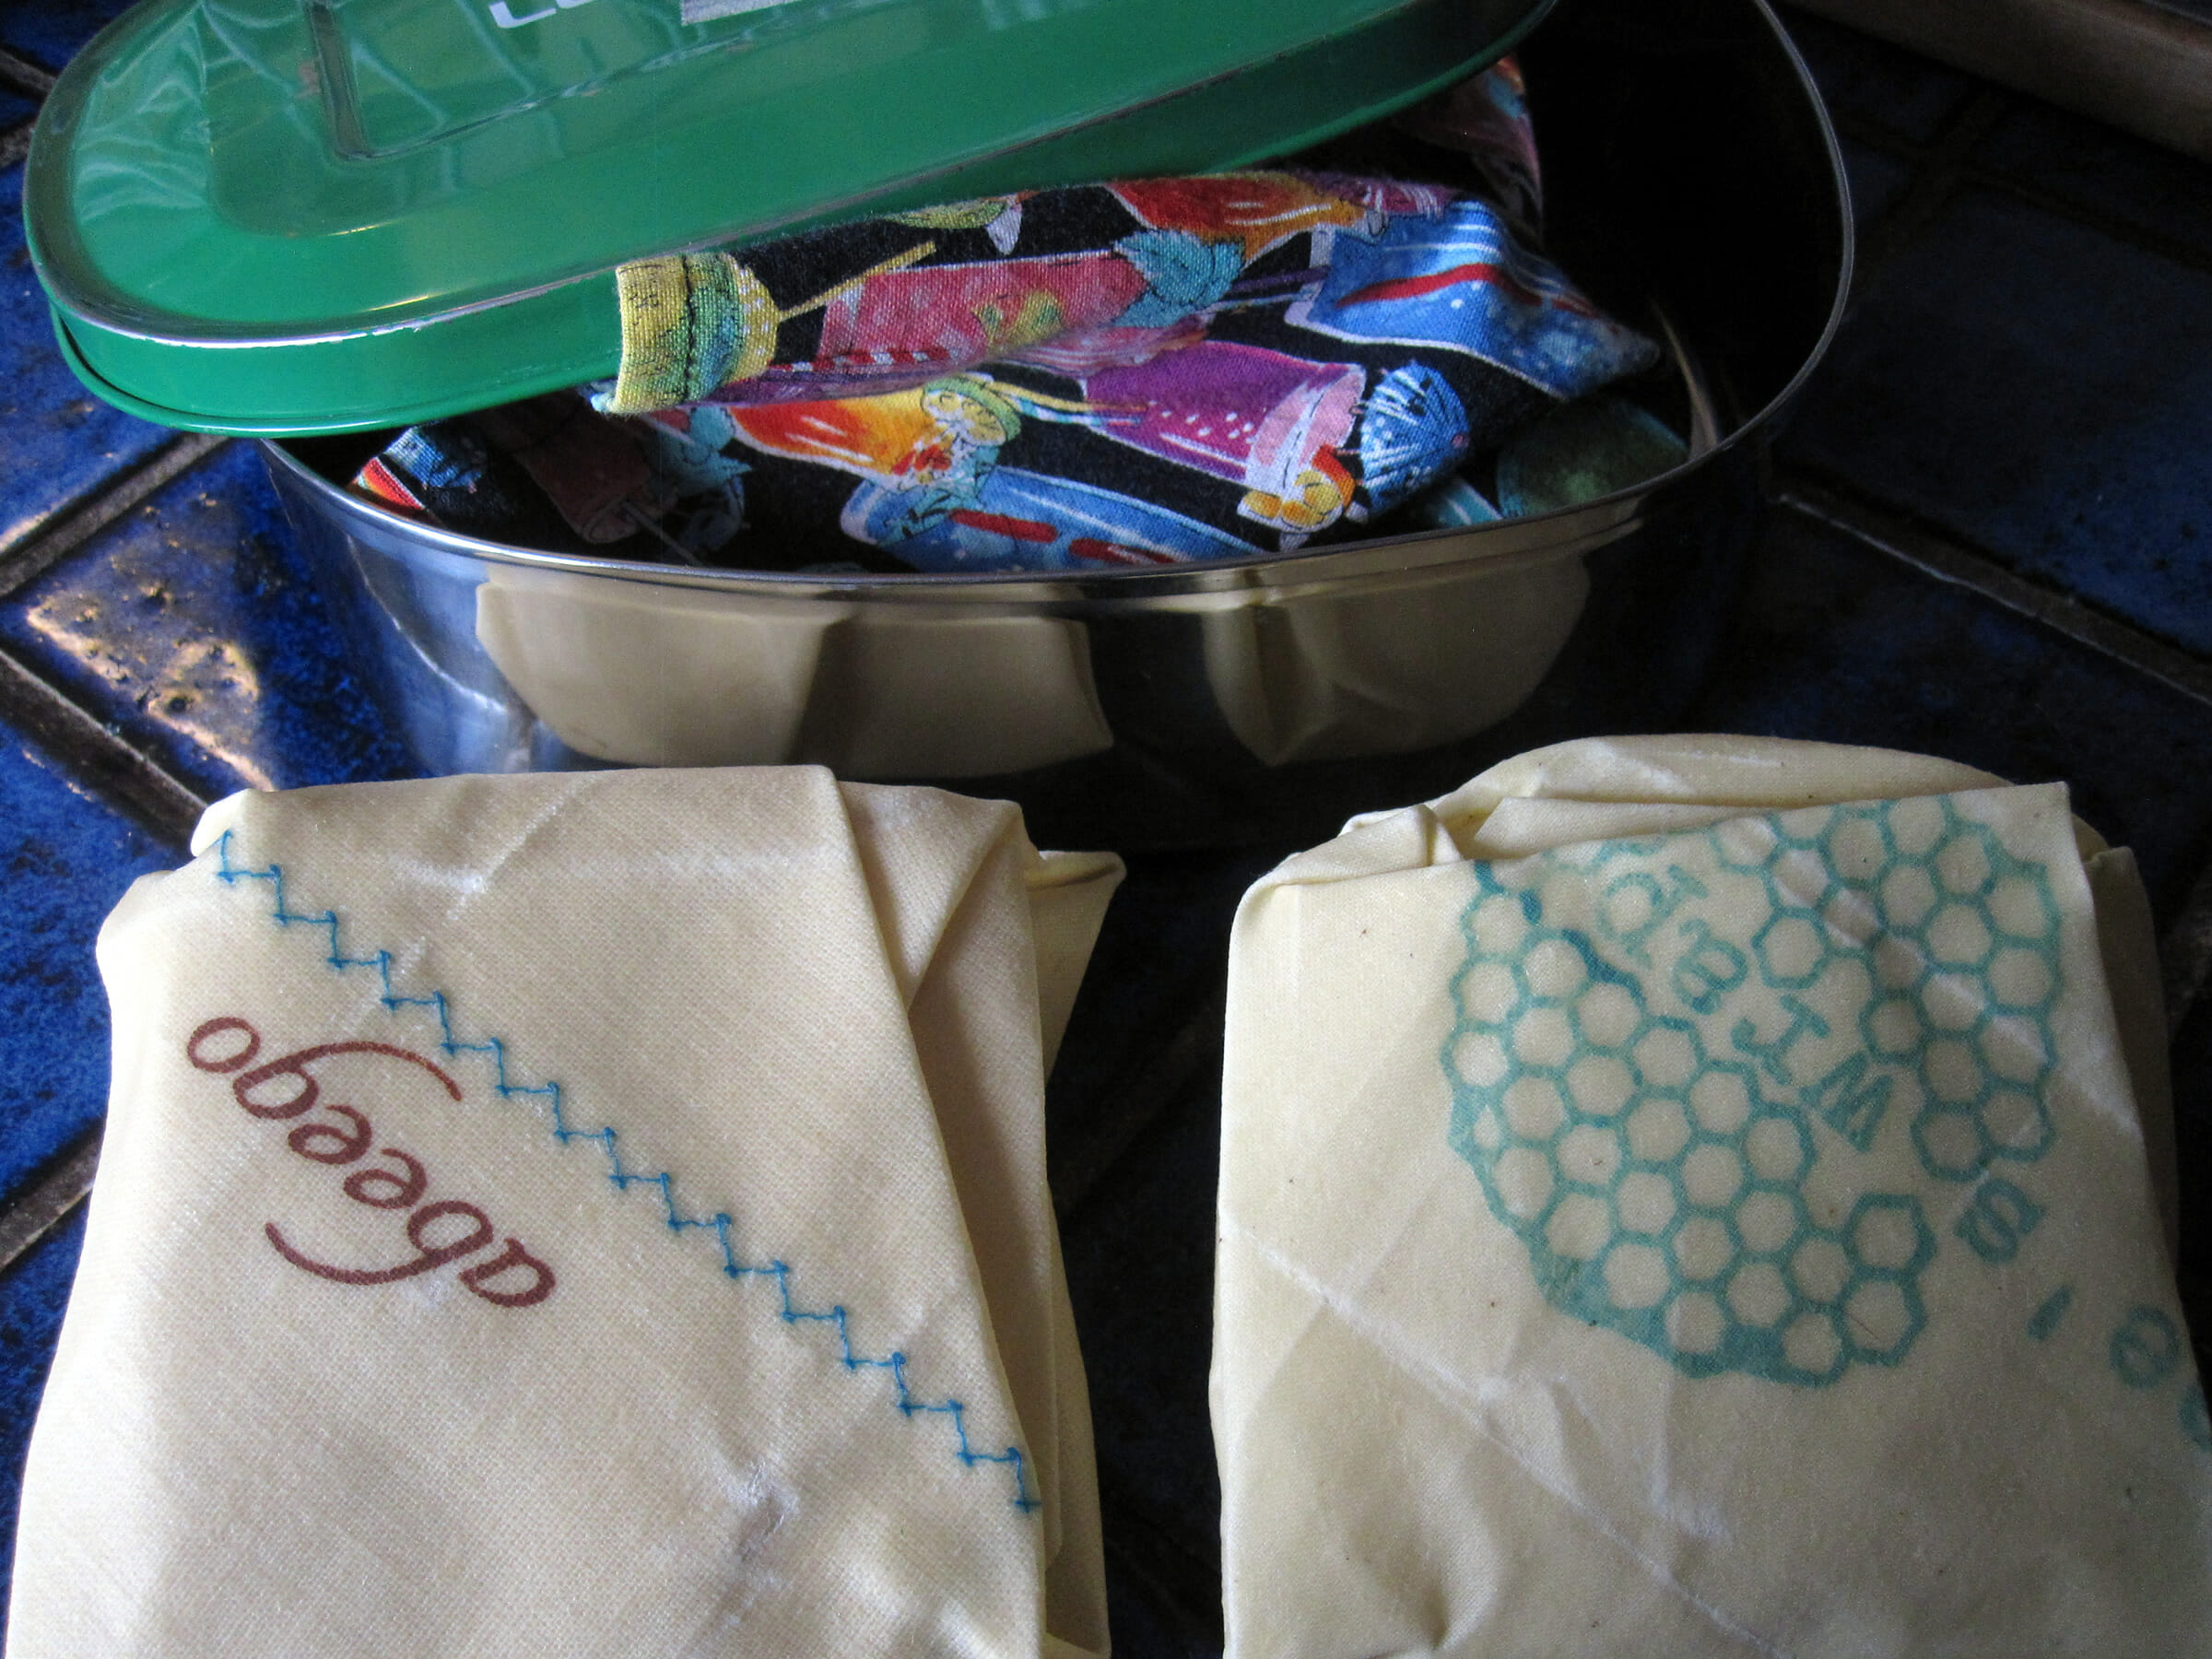 Can Beeswax Cloth Wraps Replace Plastic Cling Wrap? » My